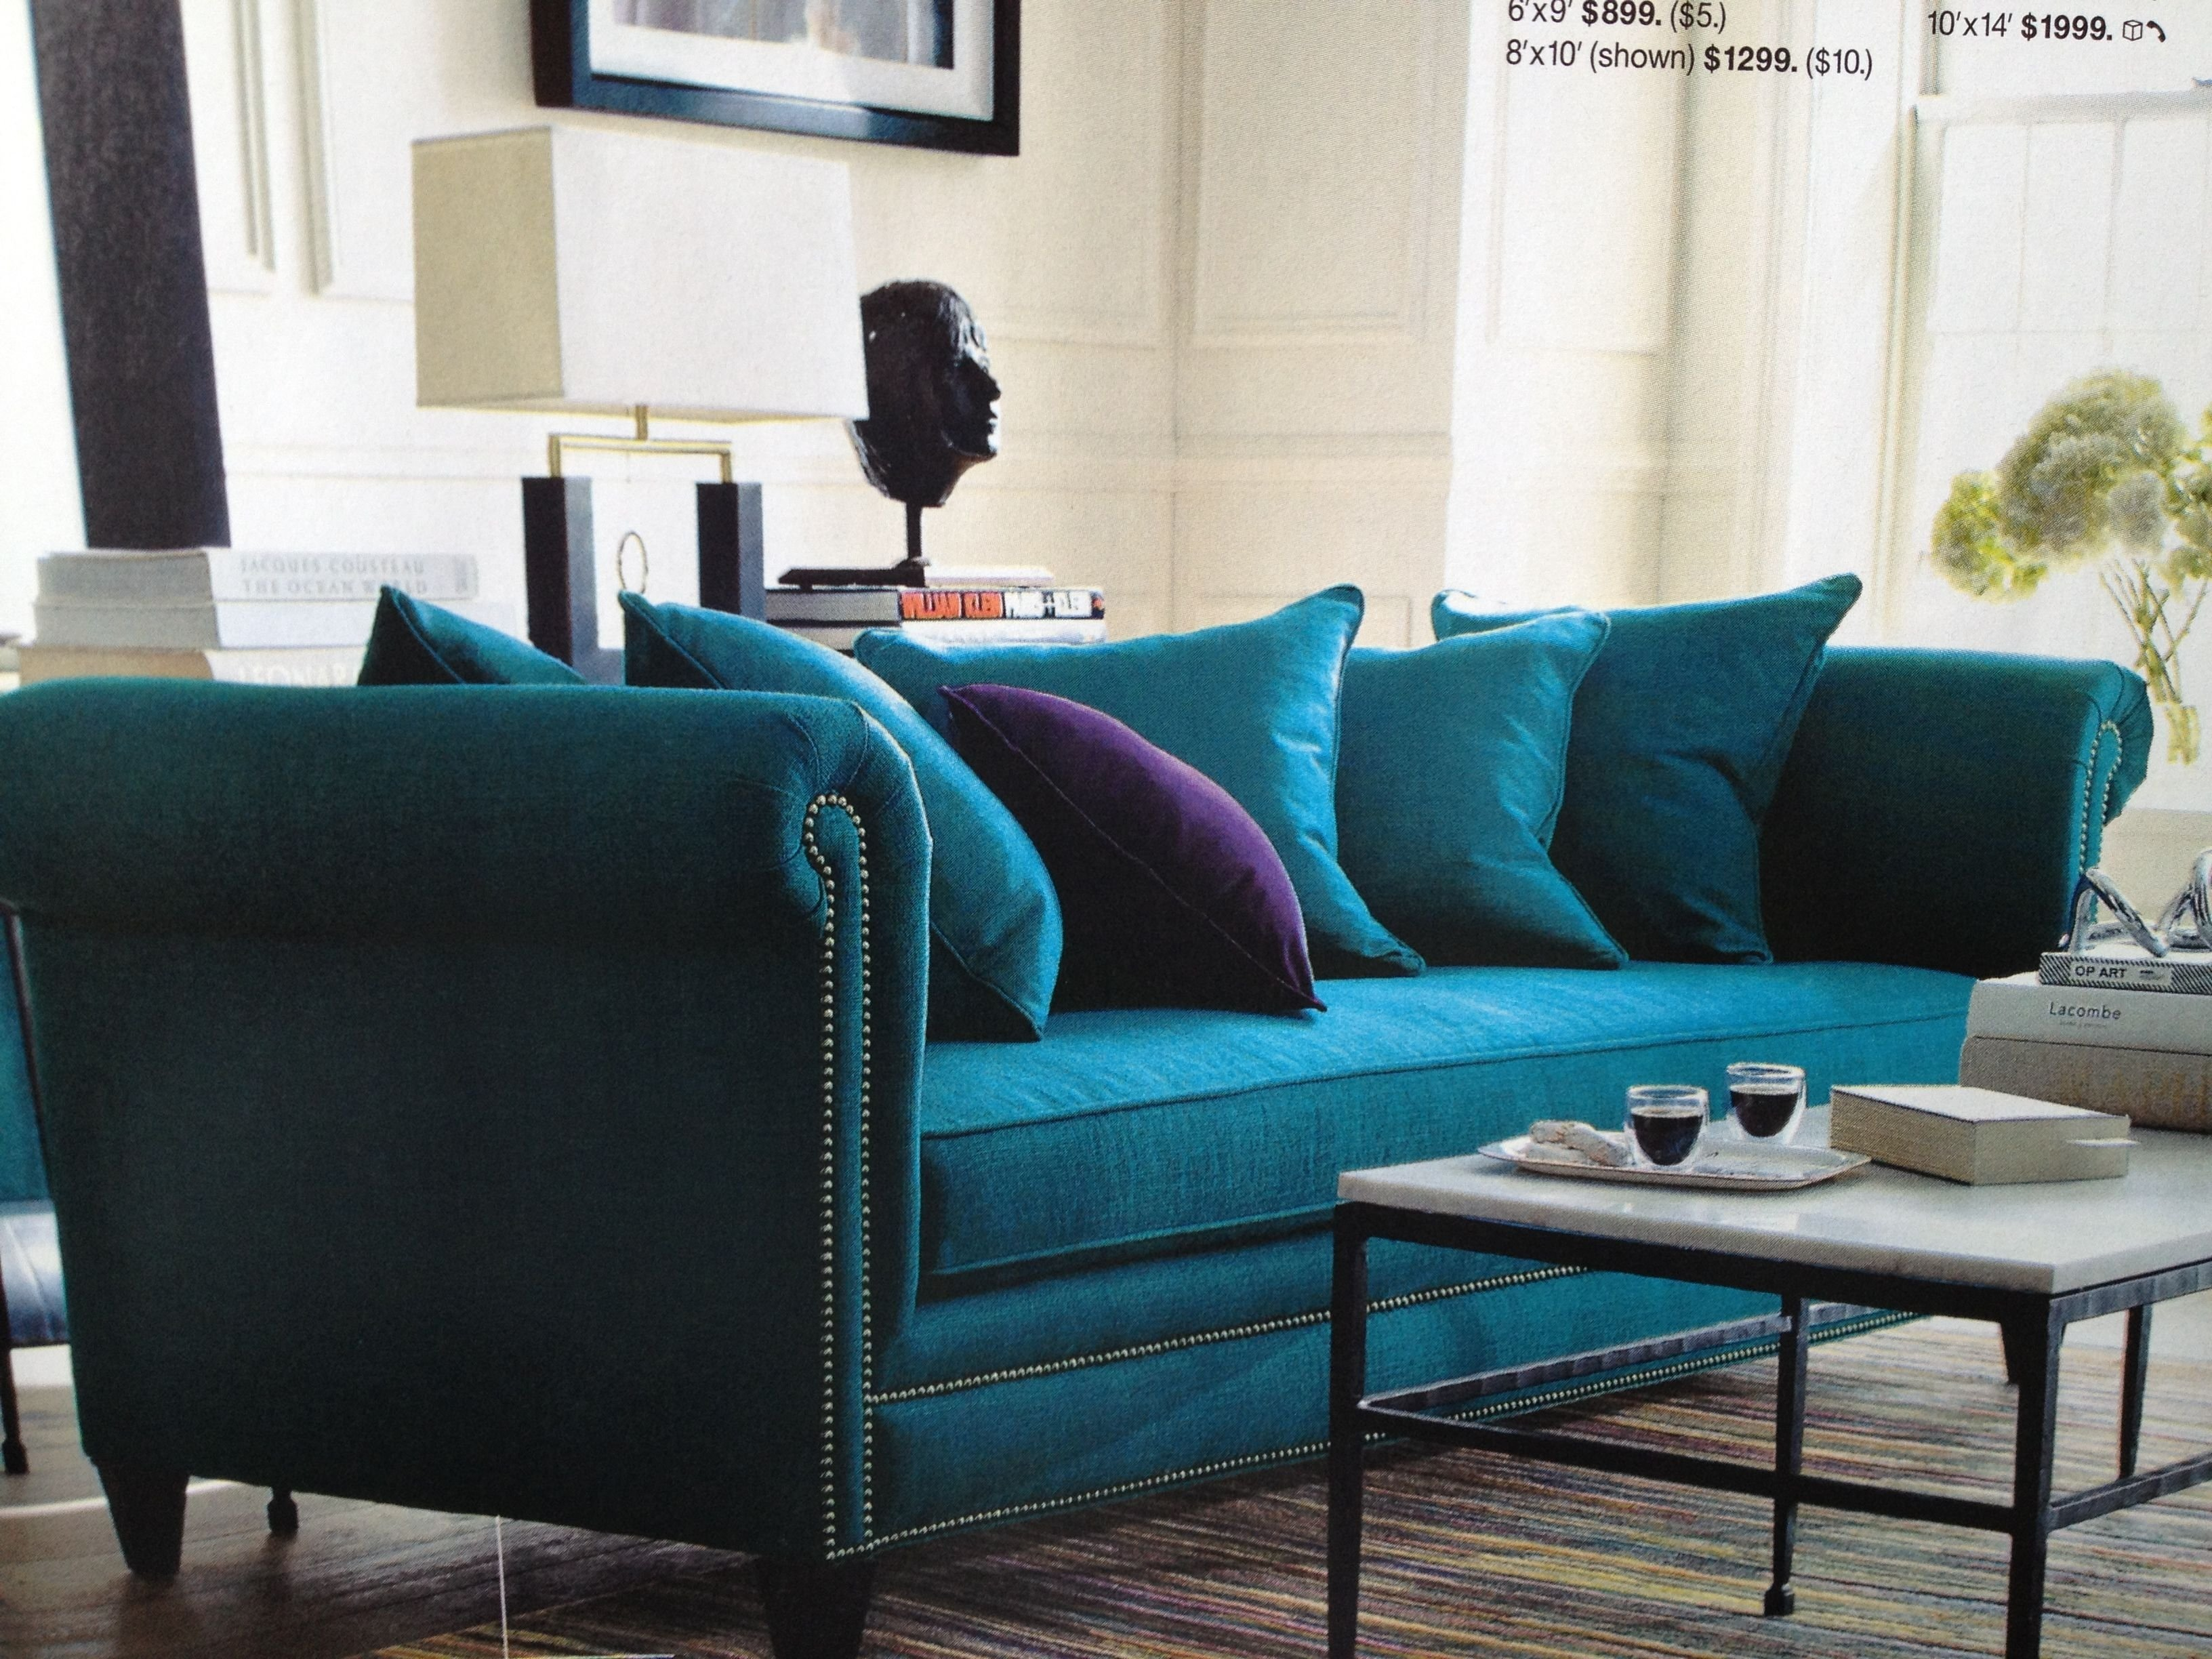 10 Cute Crate And Barrel Living Room Ideas Crate Barrel Tailor Sofa In  Peacock Furnishings Decor